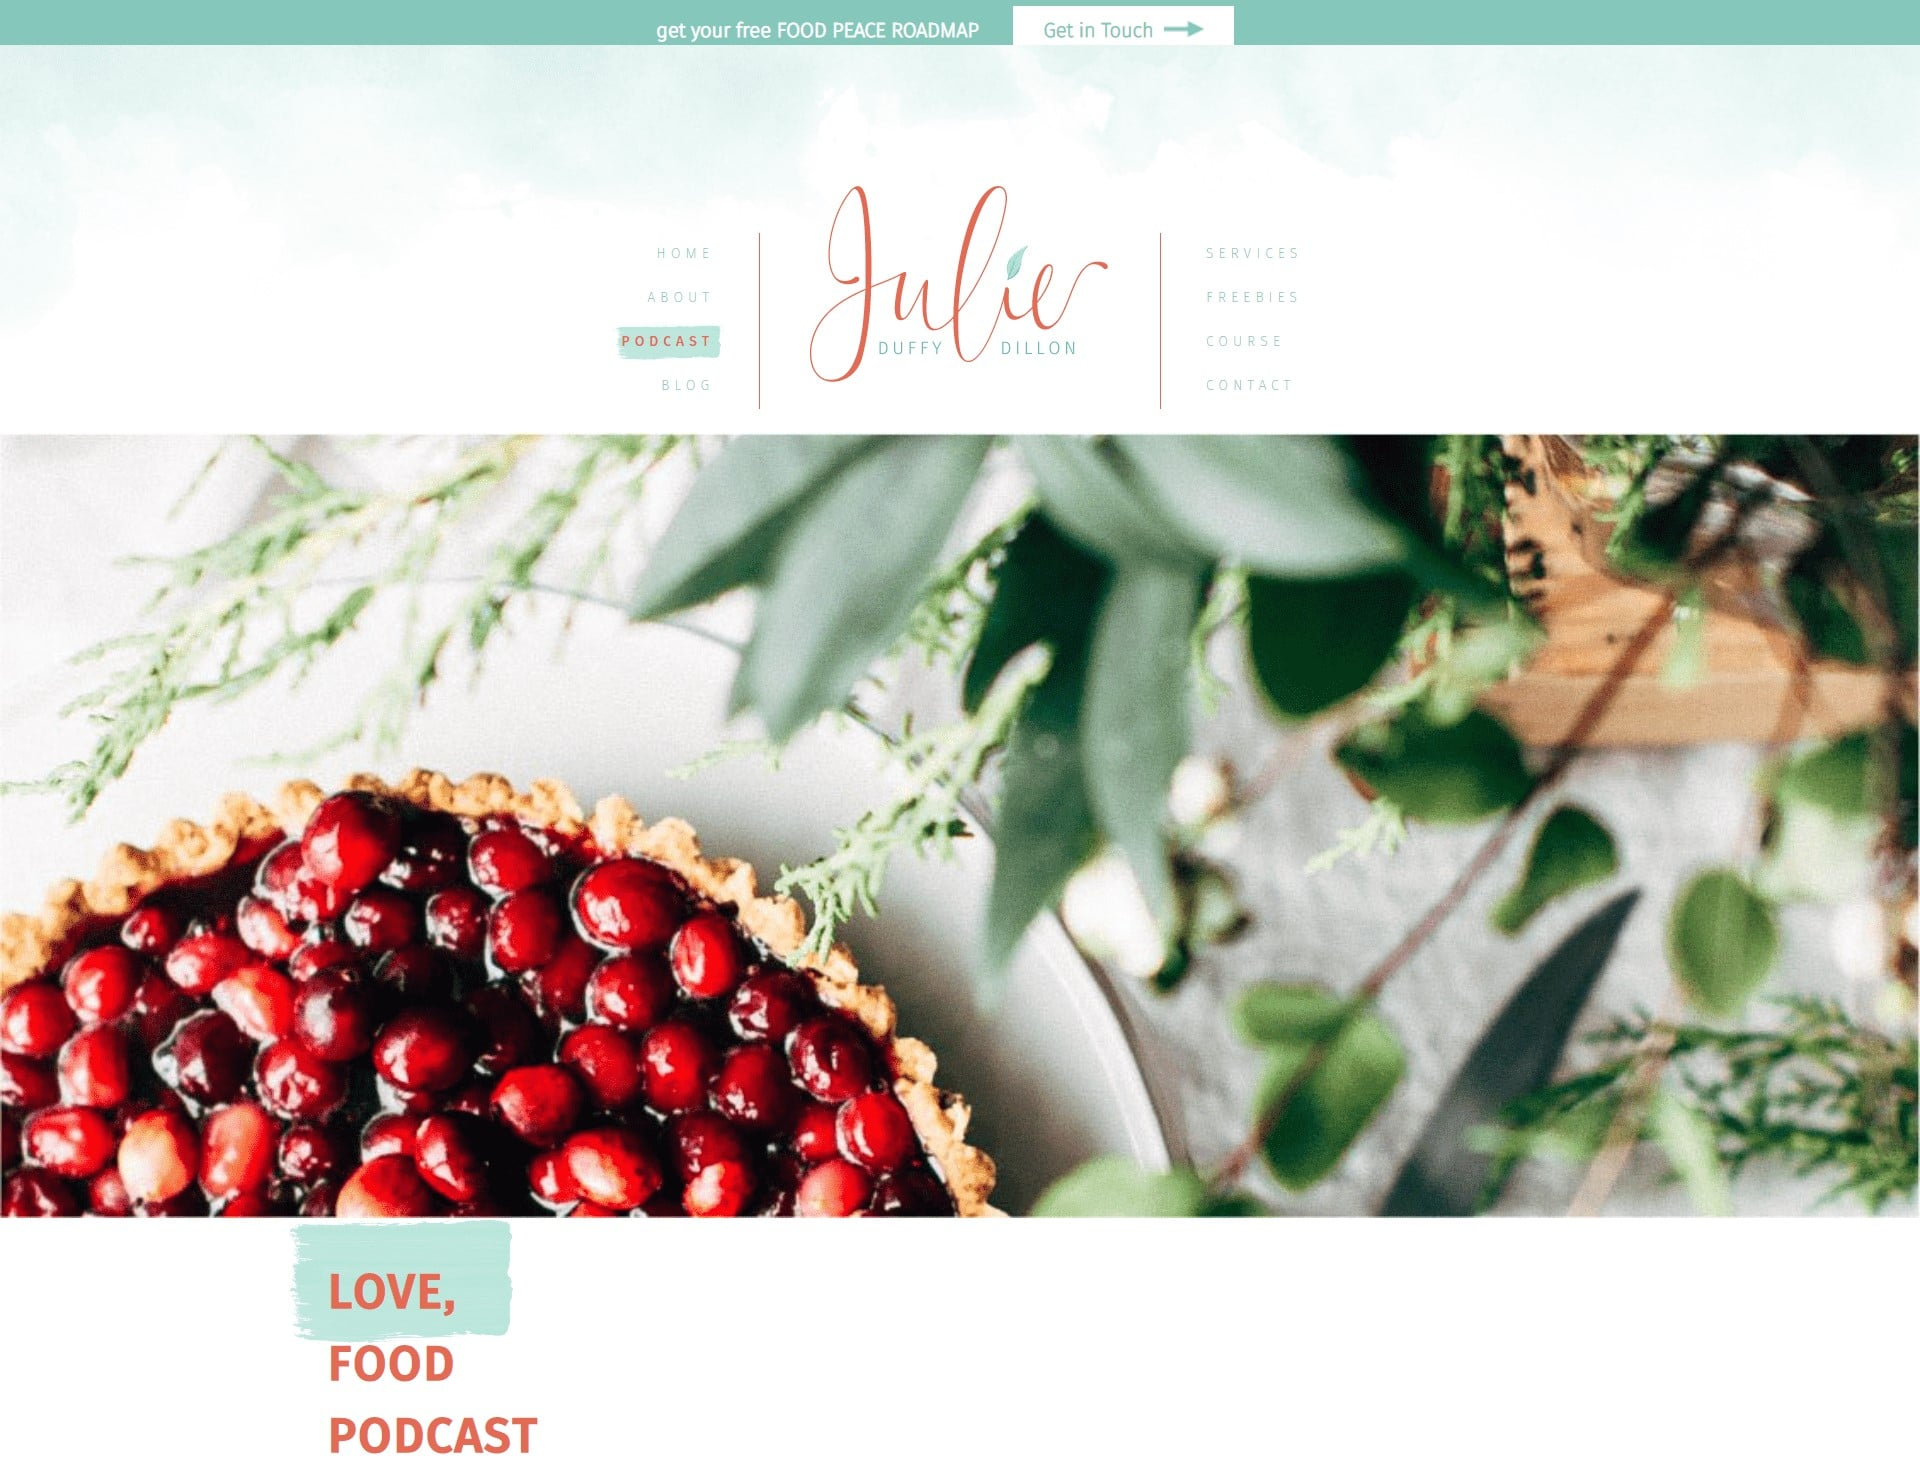 love food podcast landing page